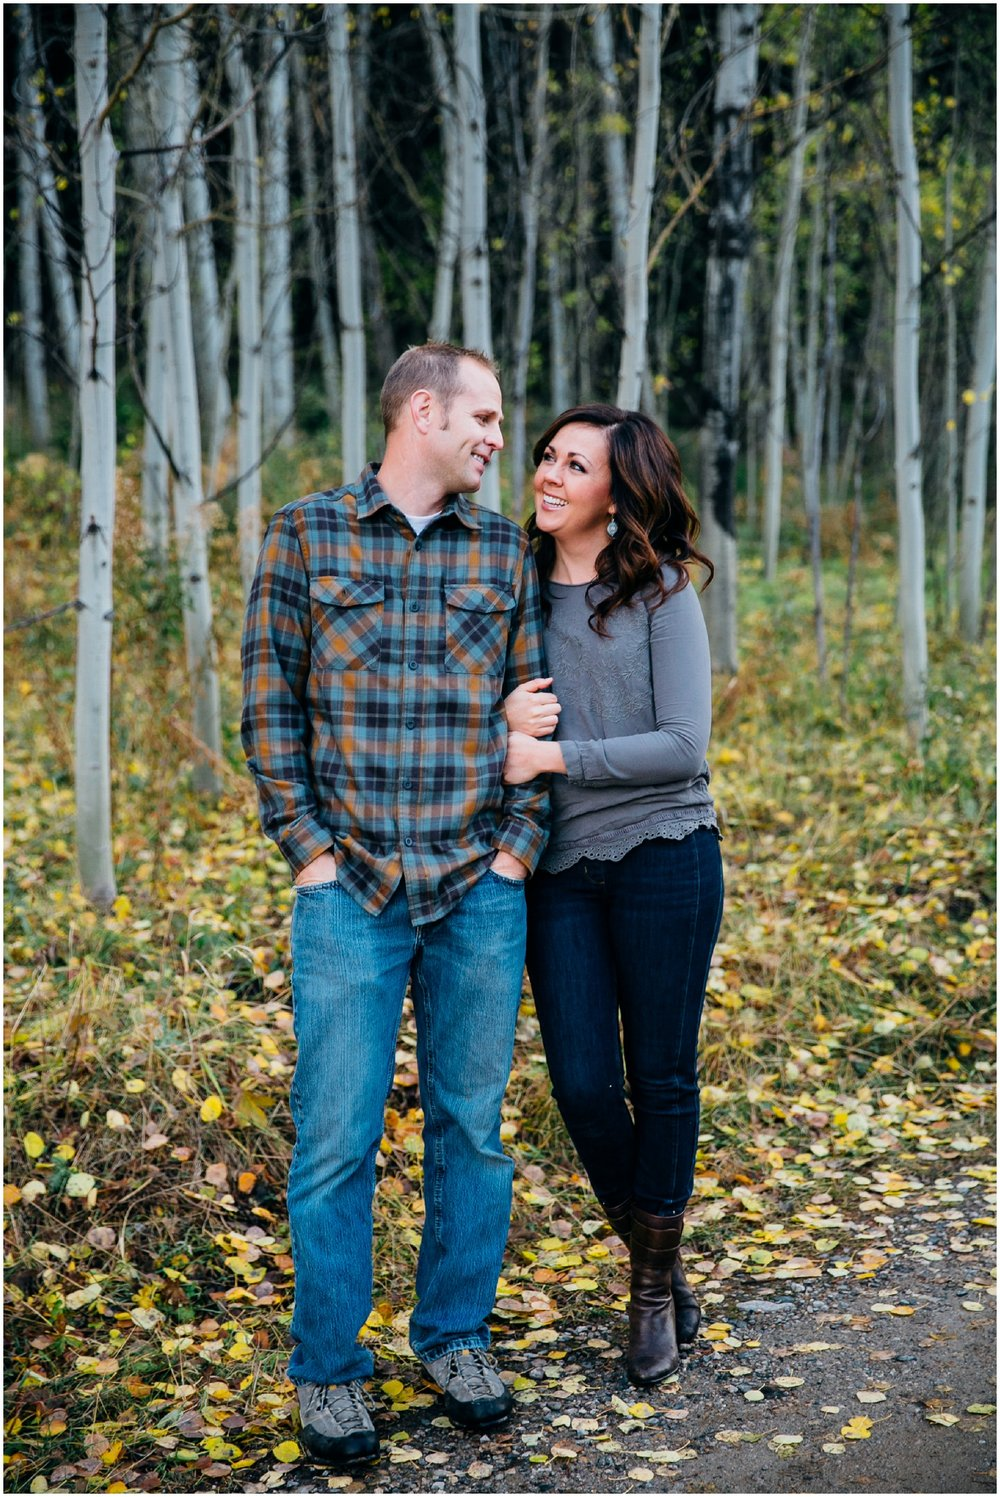 island-park-idaho-wyoming-engagements-idaho-colorado-wyoming-wedding-photographer_0931.jpg